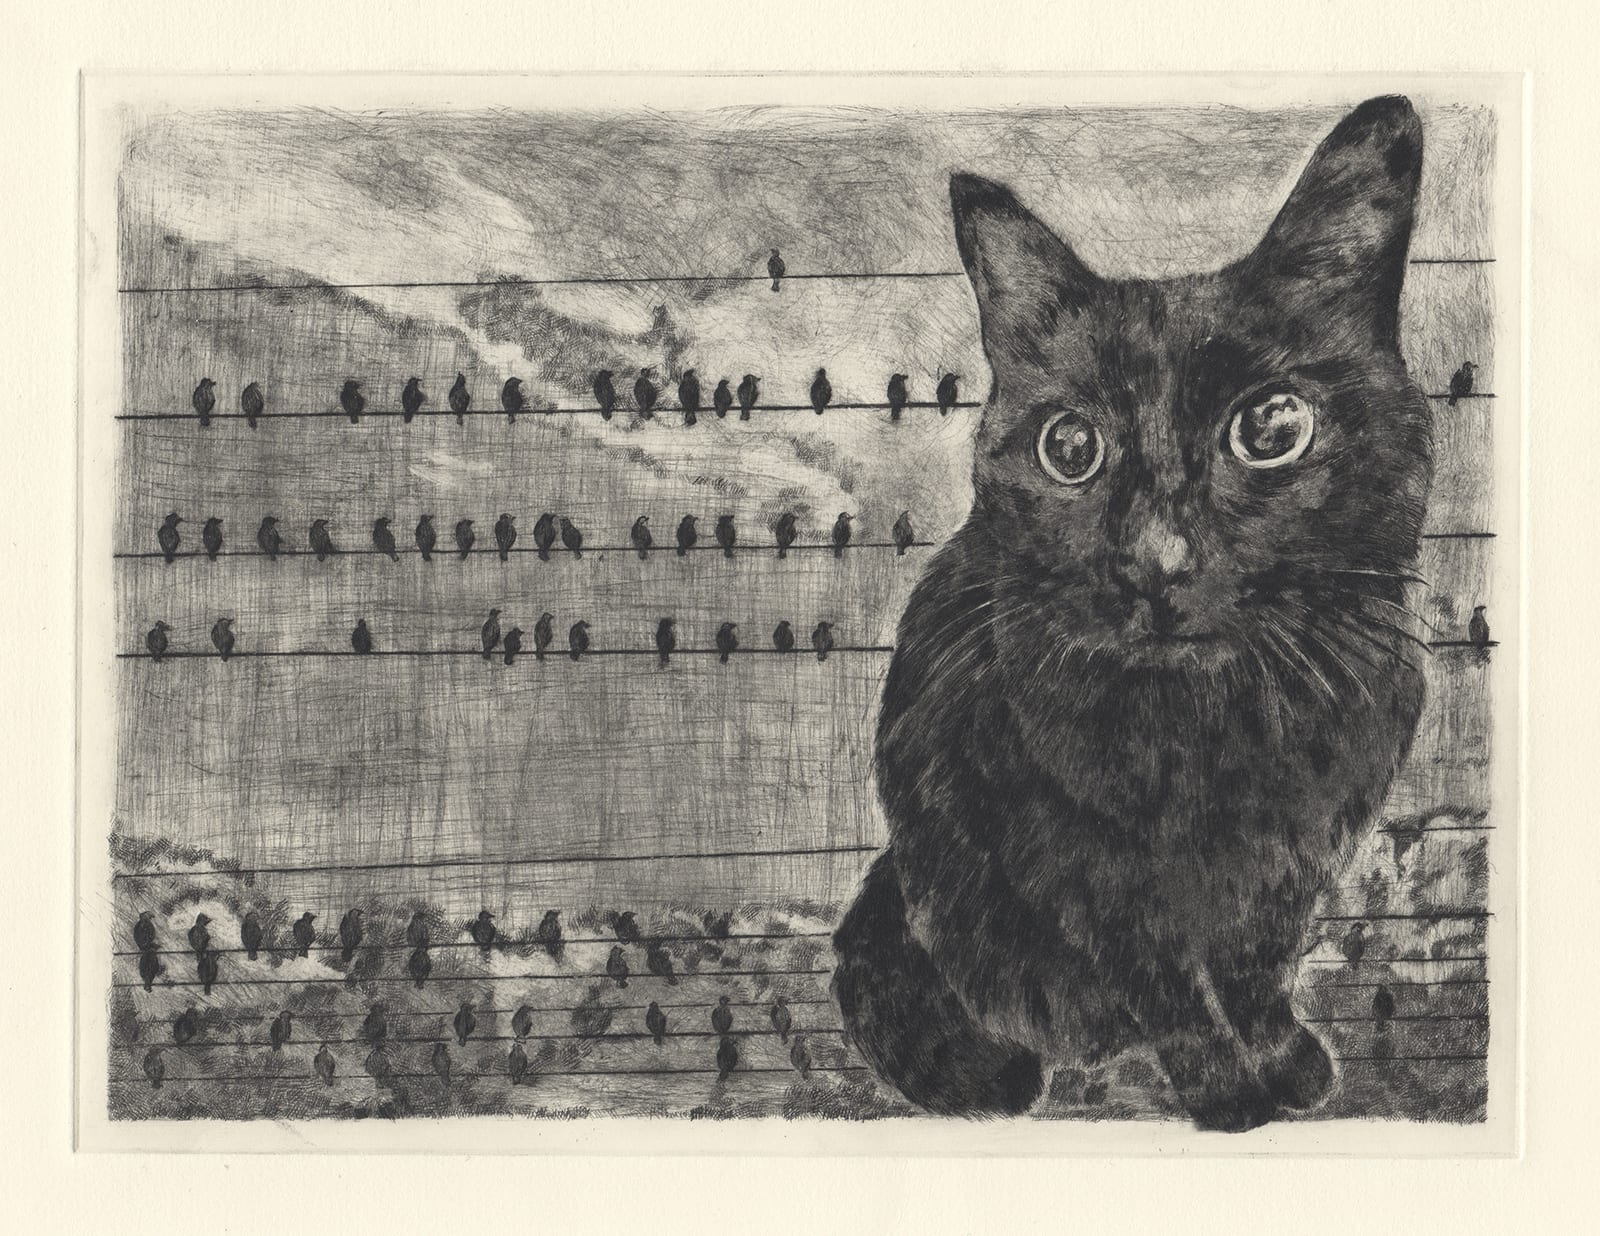 Kuro and wires (drypoint etching by Yaemi Shigyo)